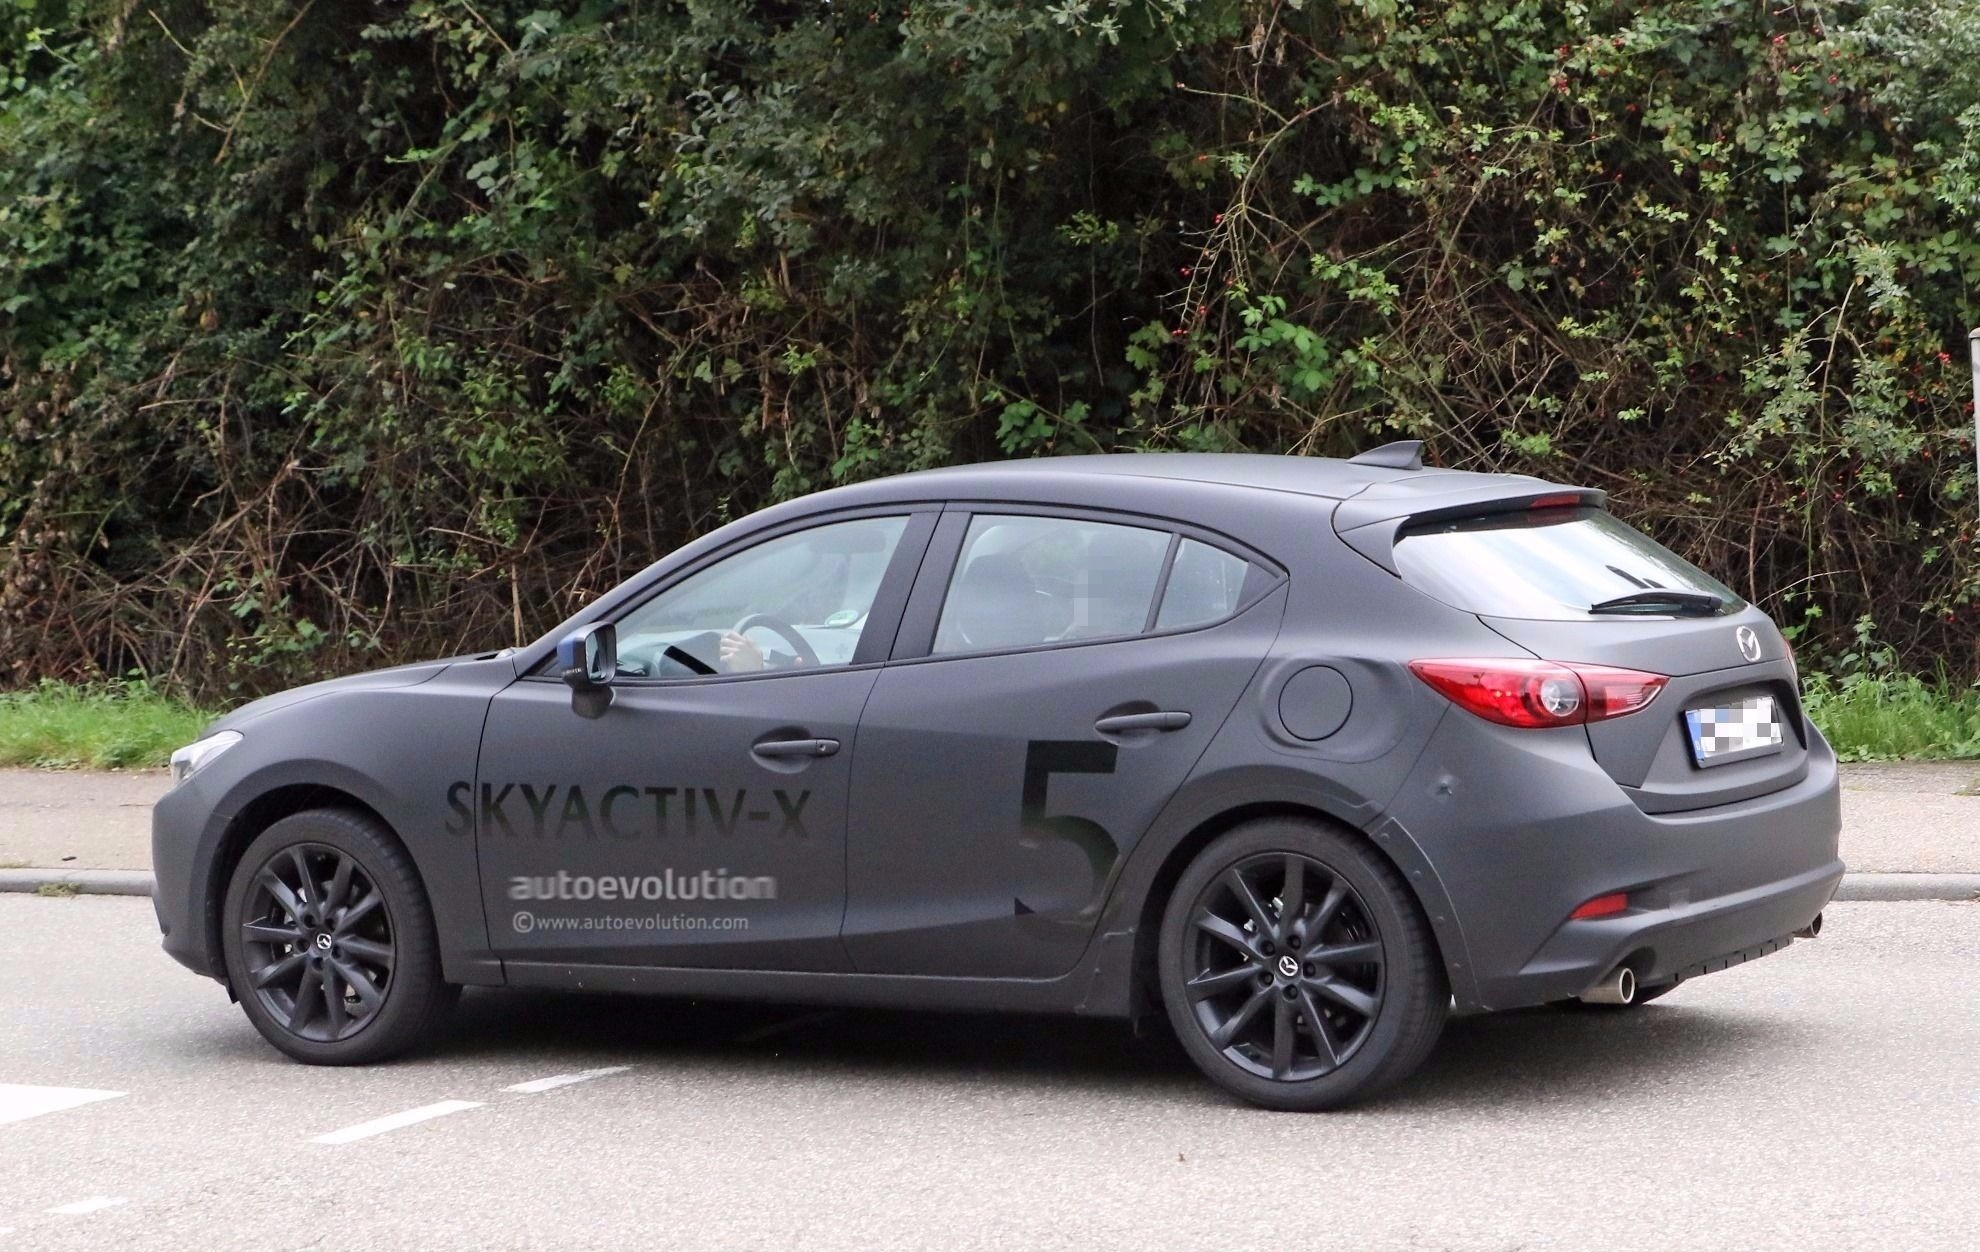 Mazda Axela 2019 >> 2019 Mazda3 Teaser Video Shows Hatchback Body Style, Looks Ready For Production - autoevolution